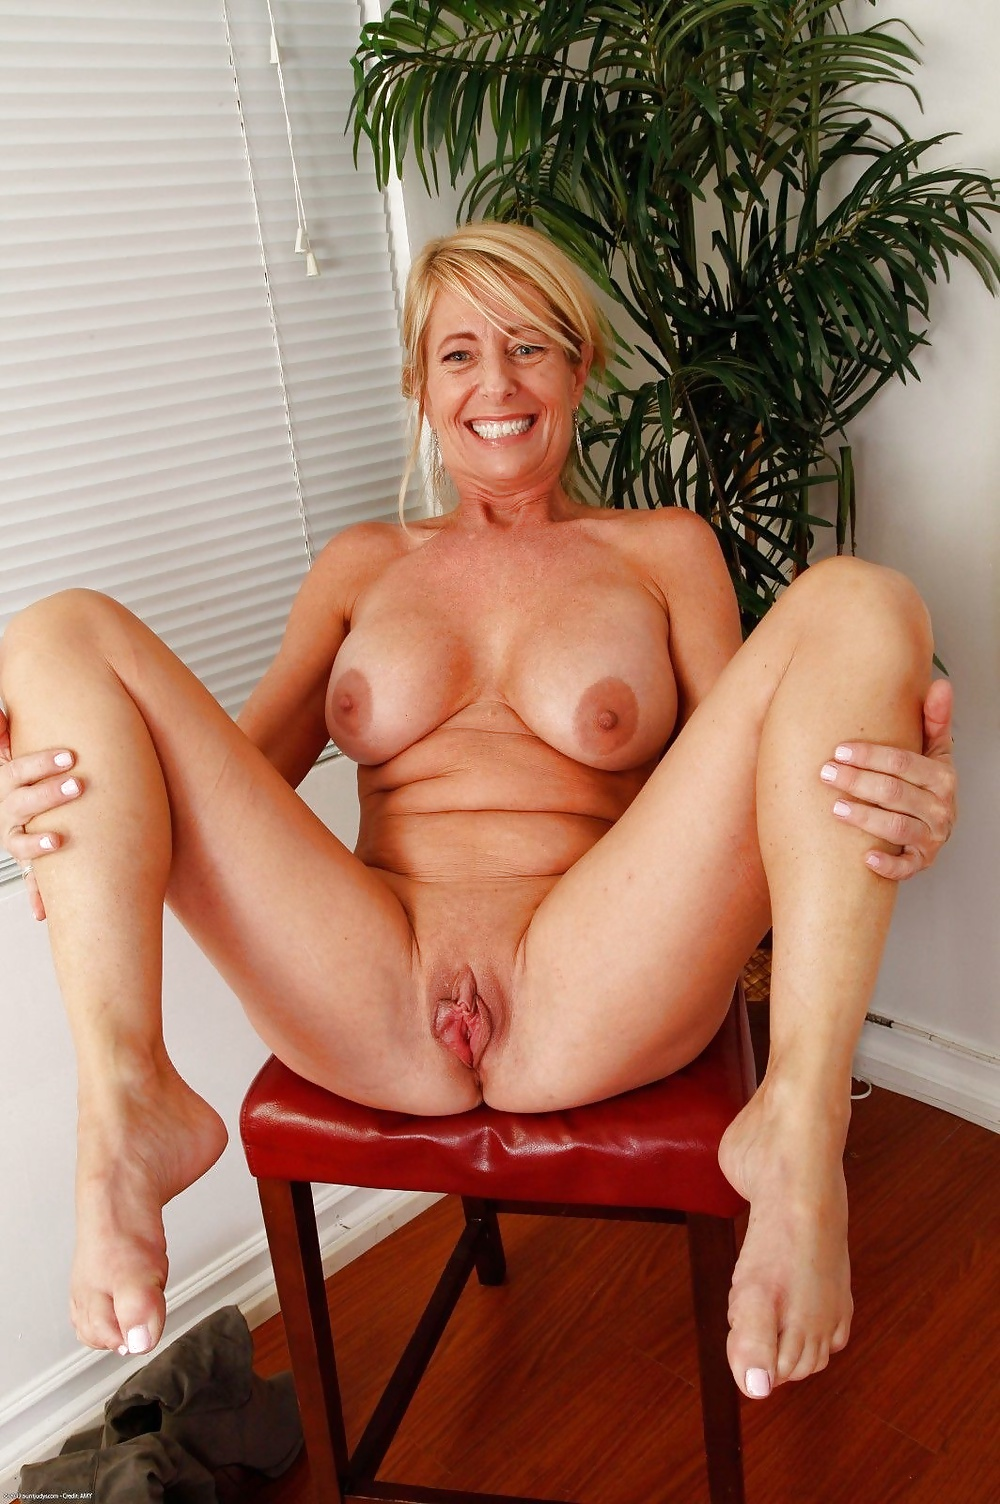 Over 50 Pussy Pics